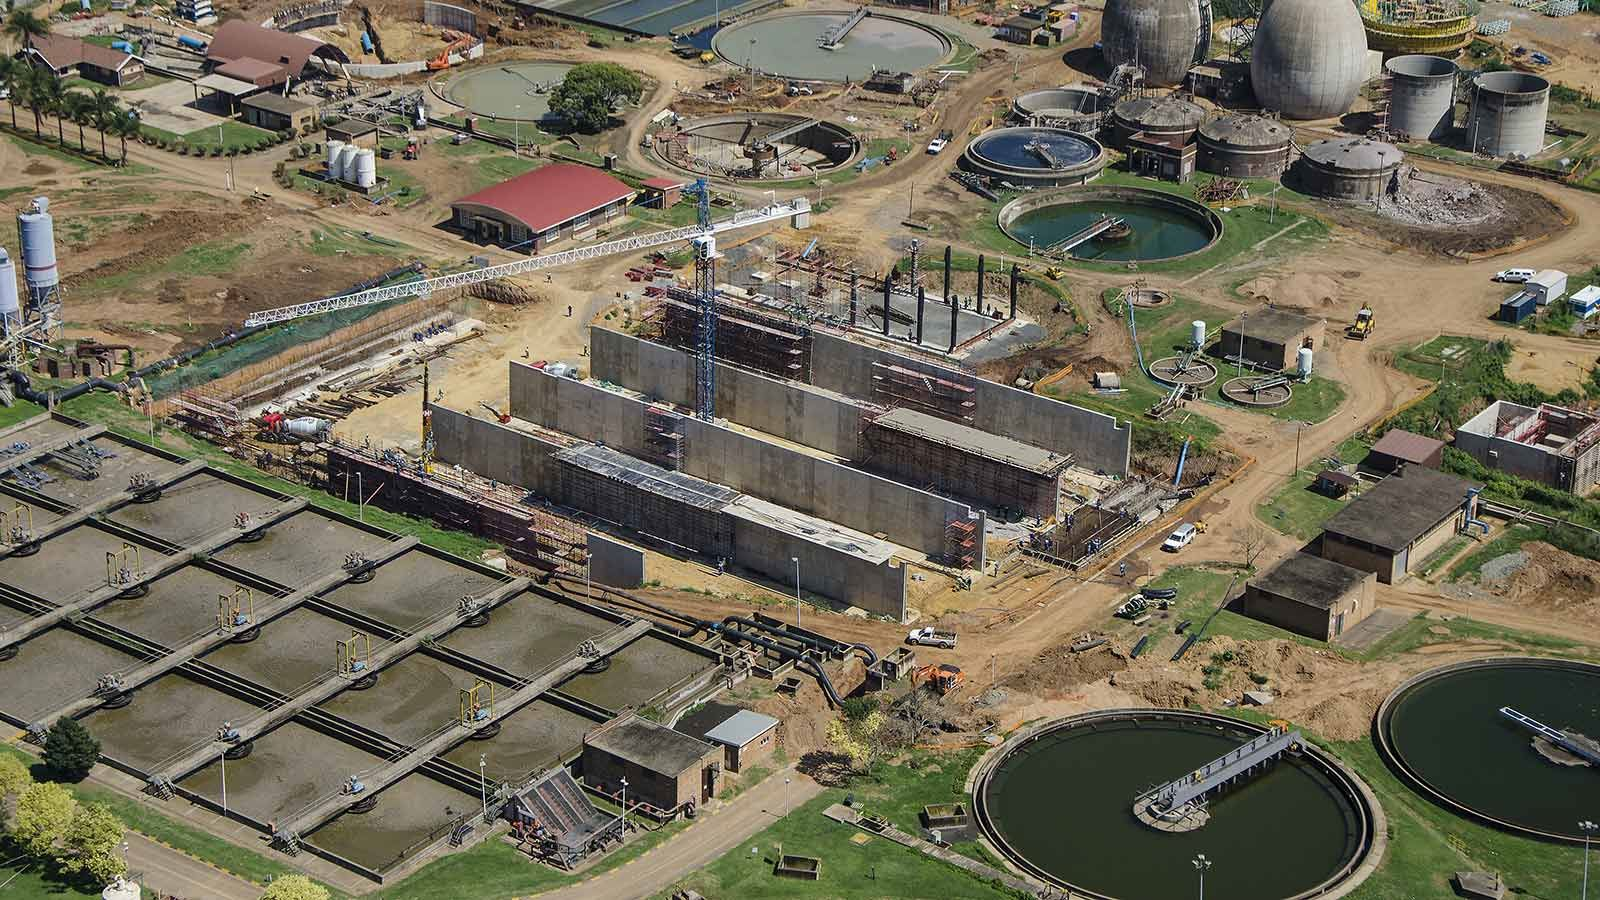 Darvill Waster Water Treatment Works Upgrade Aerial View - Mace Group